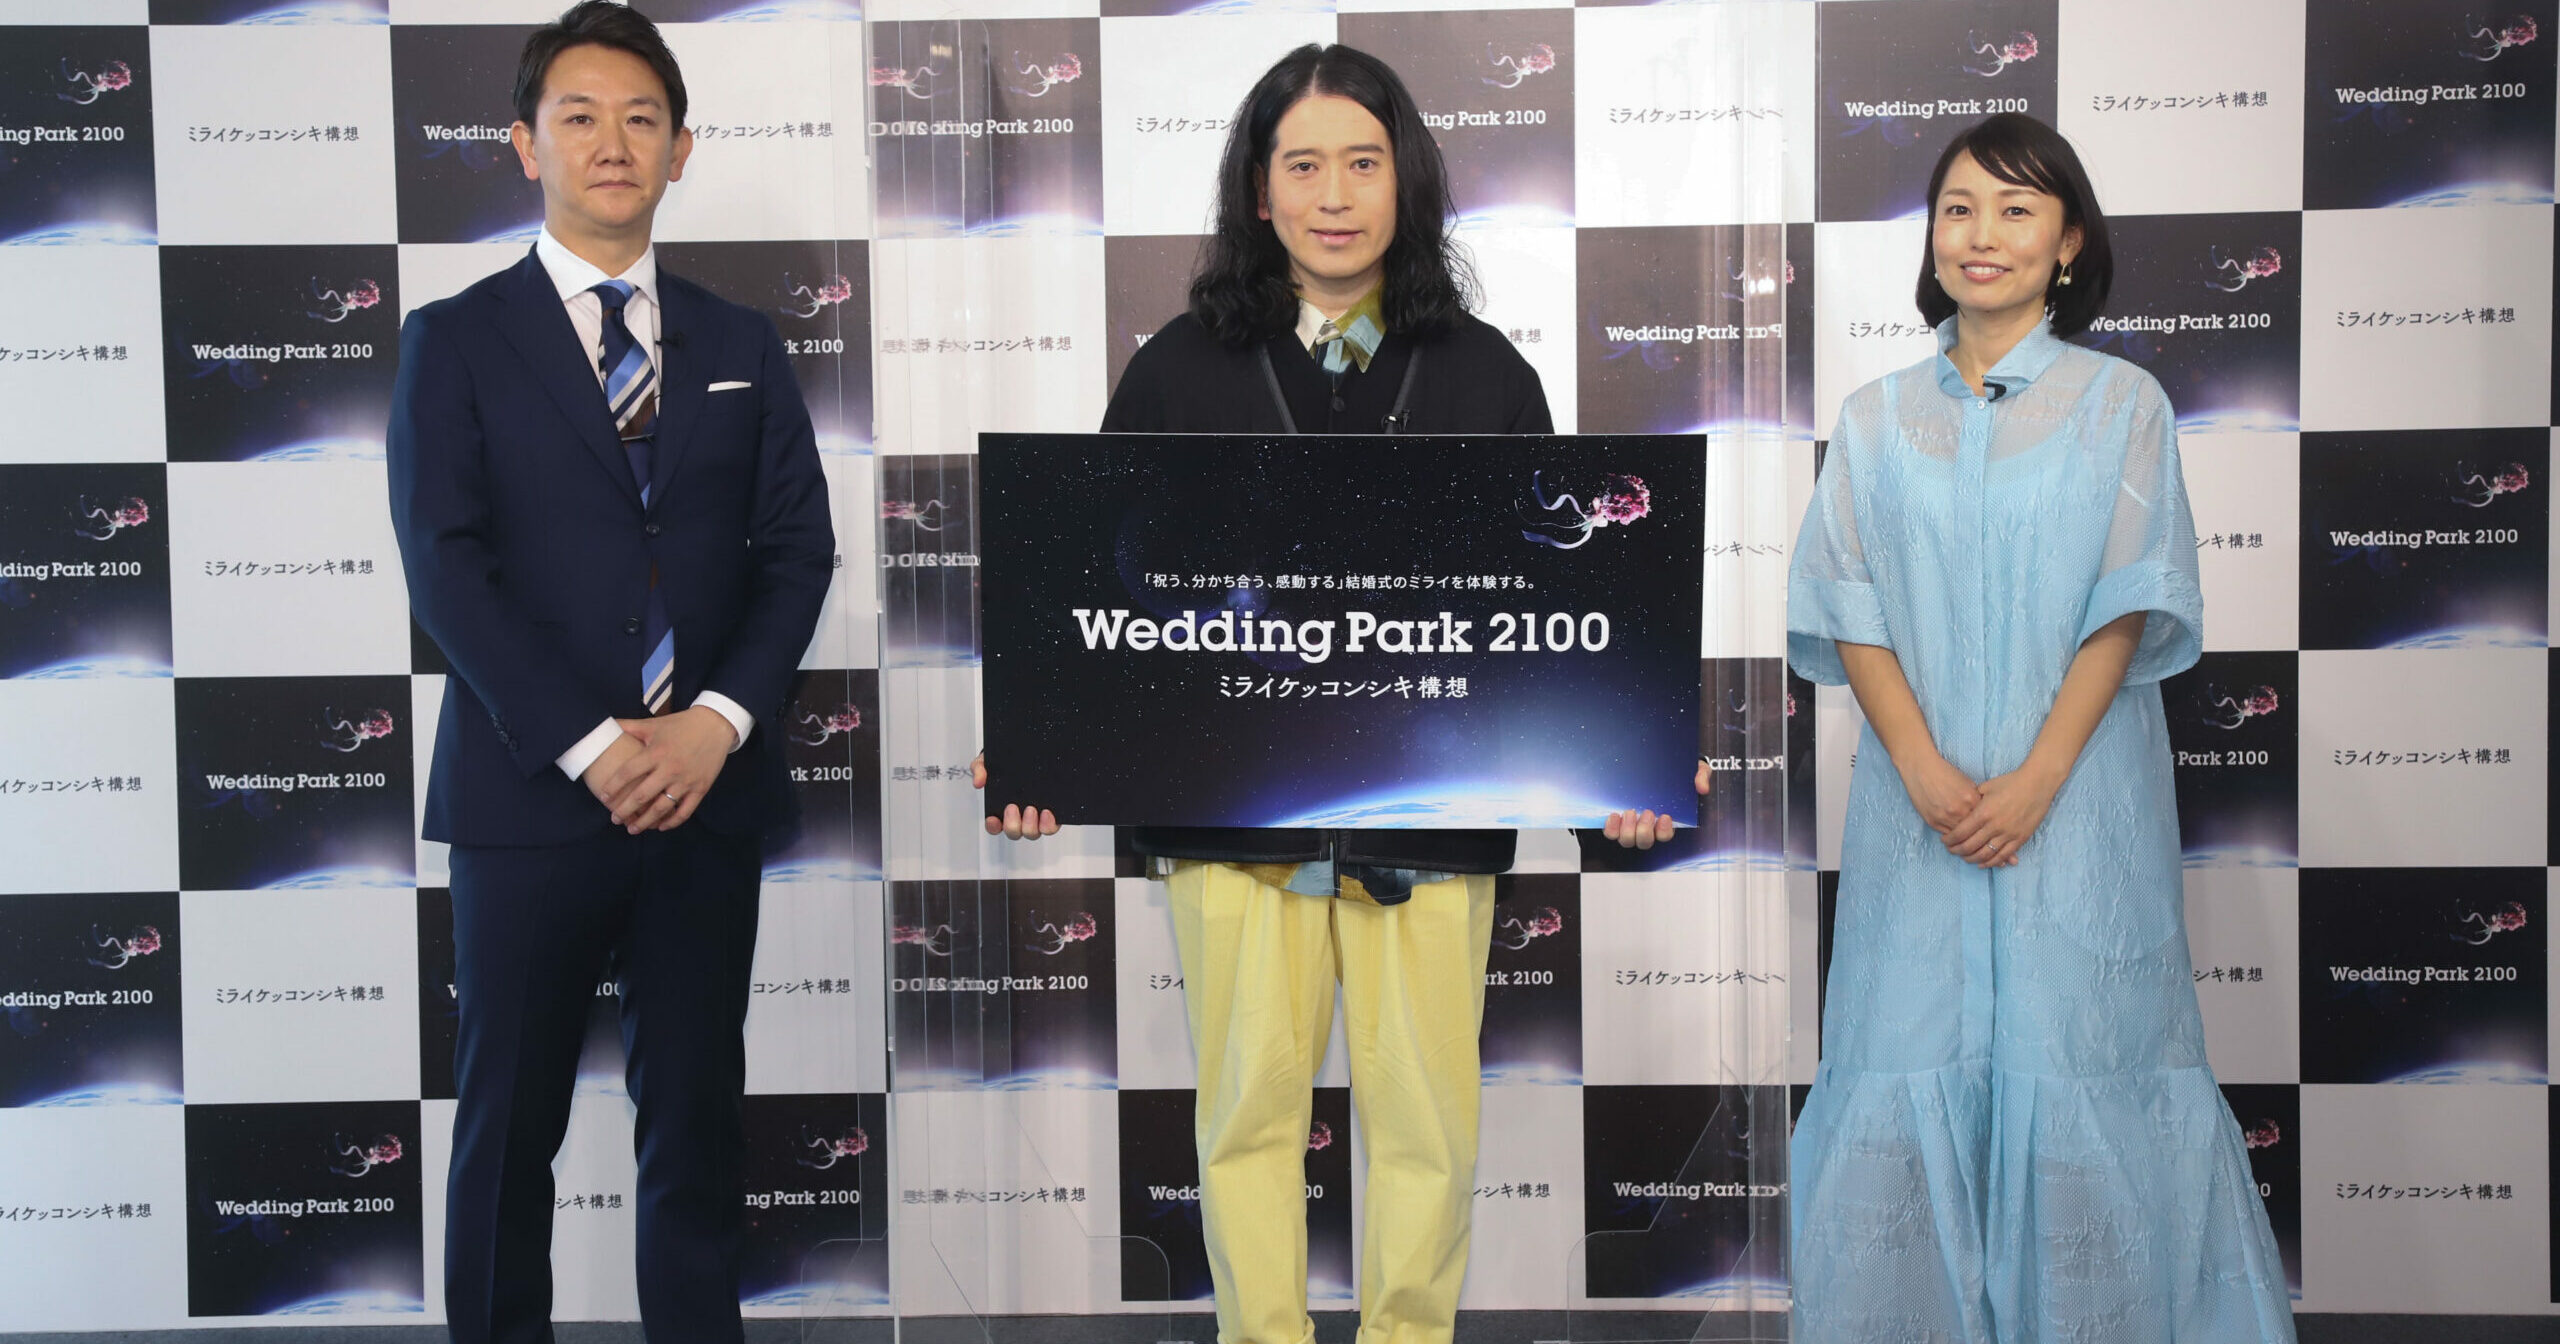 WeddingPark2100report_1